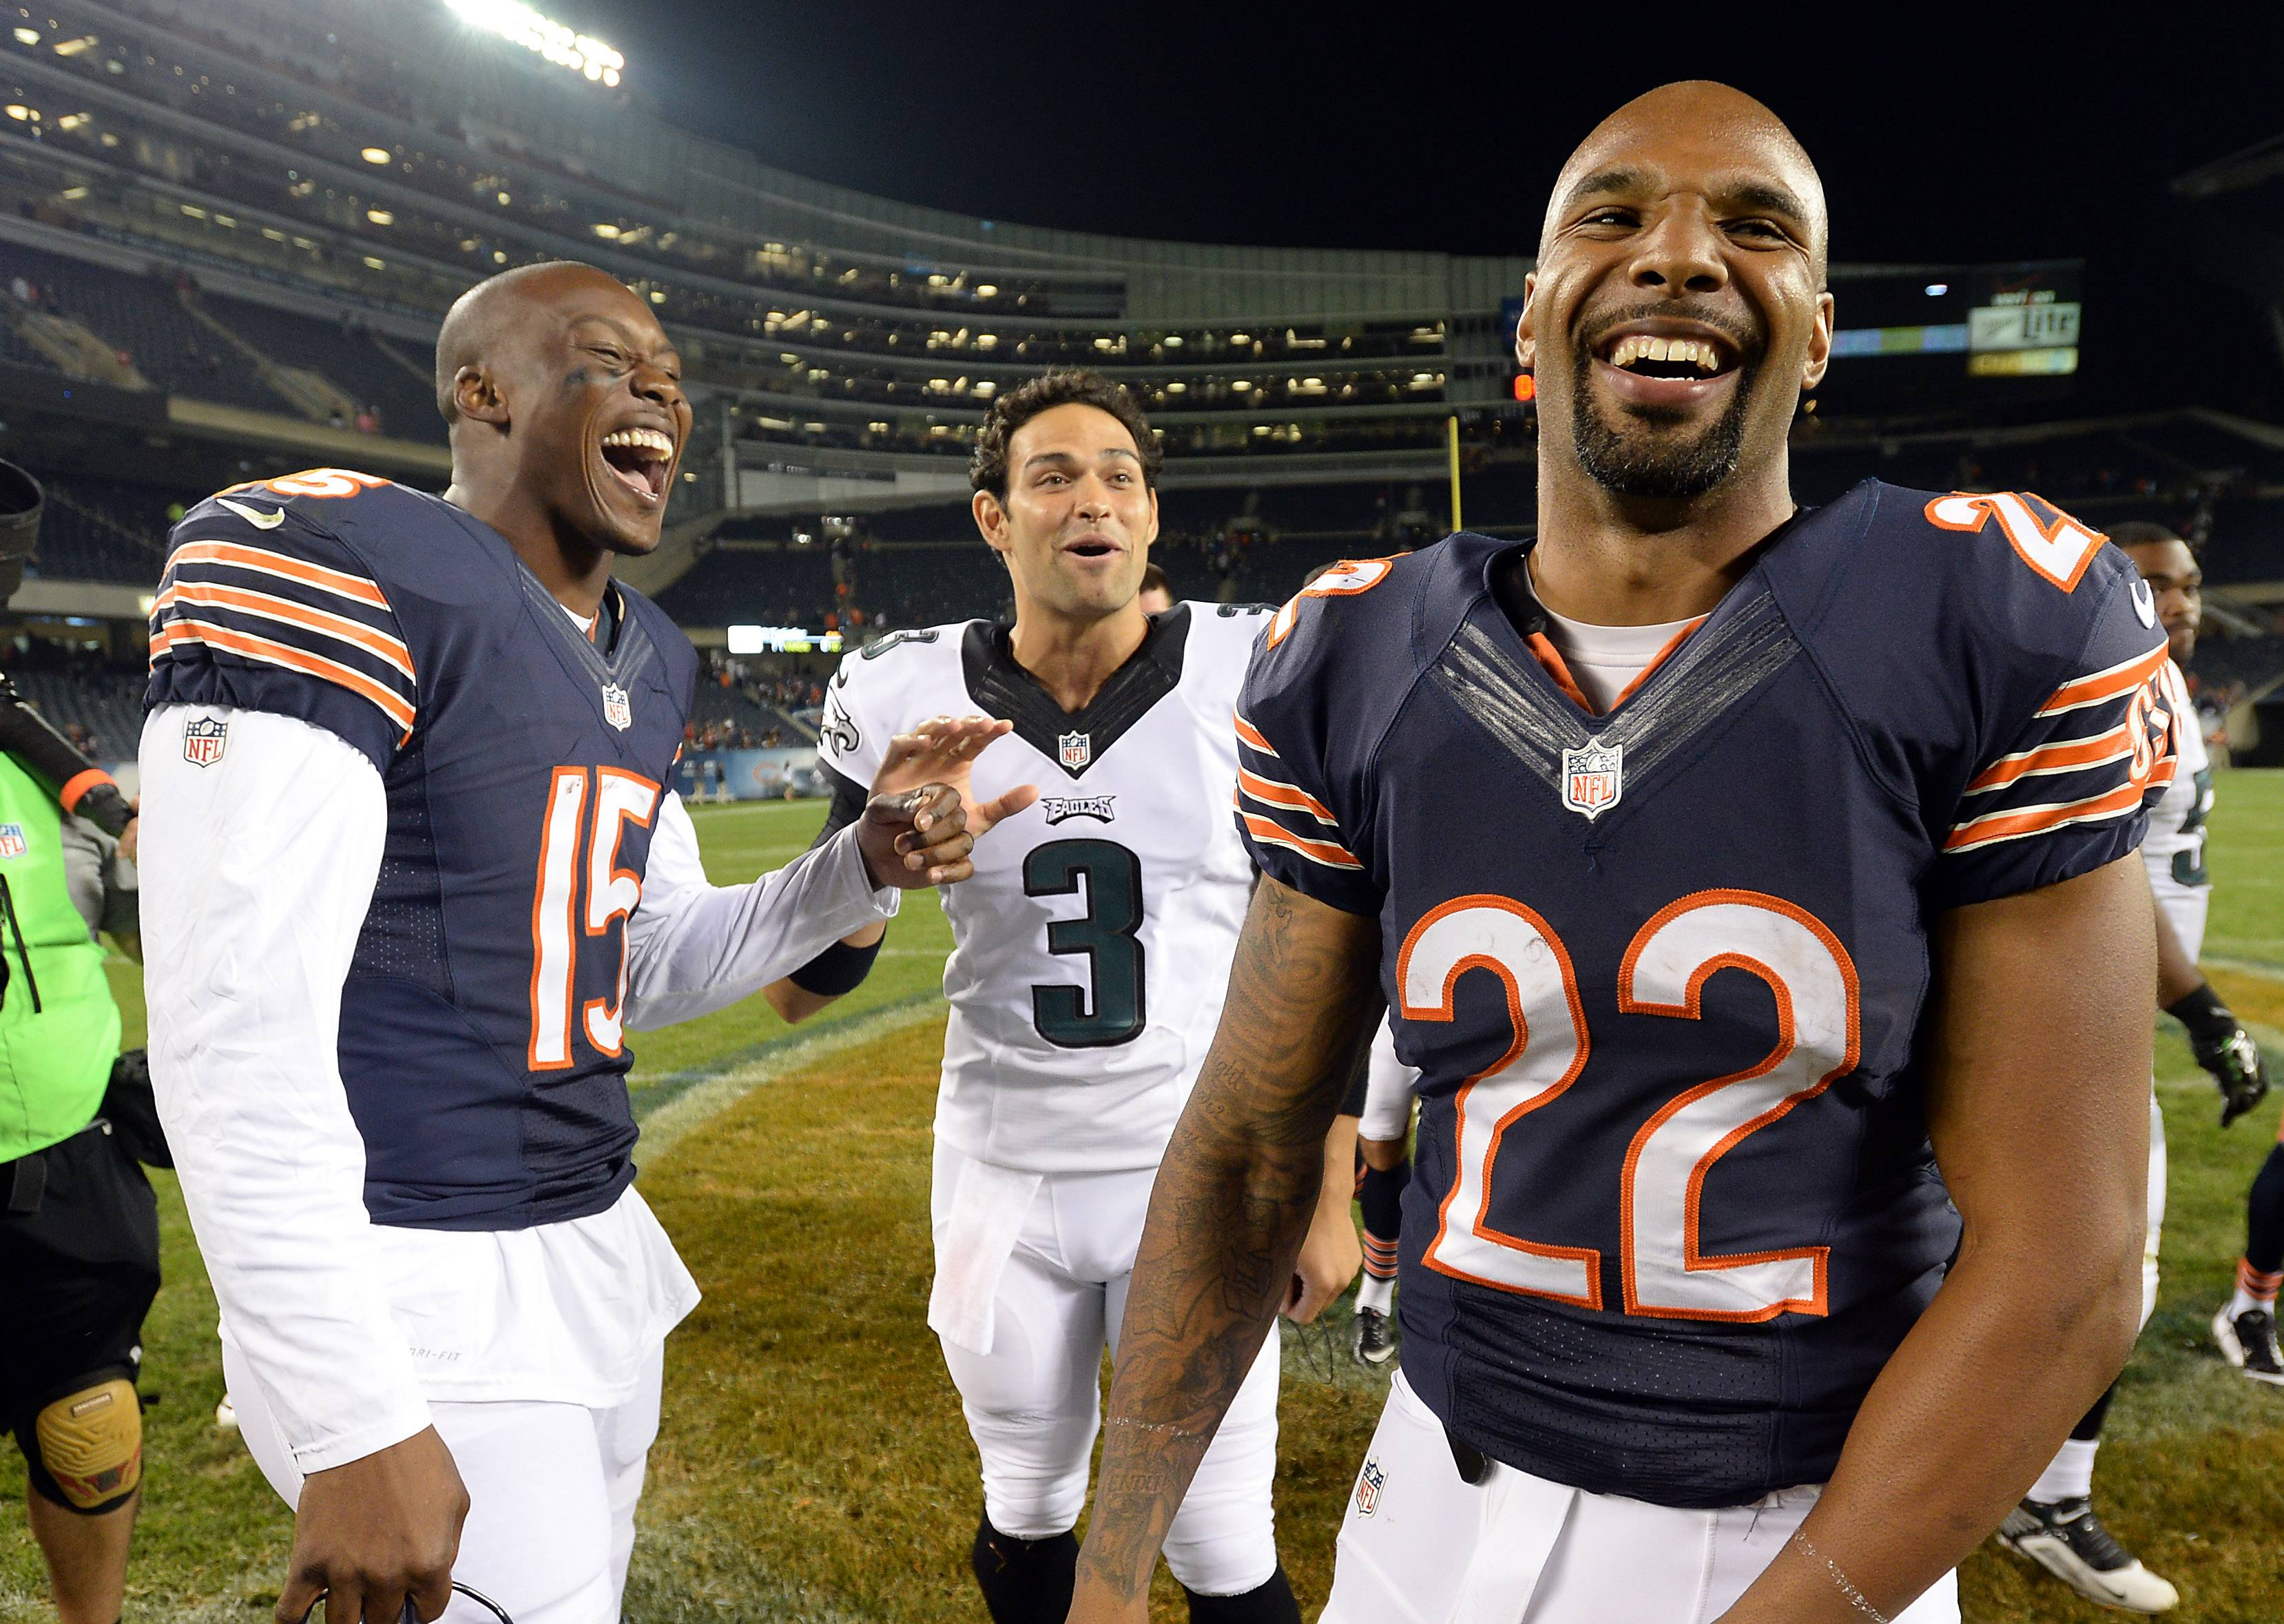 Bears Matt Forte, Brandon Marshall and Philadelphia's Mark Sanchez come together after the game.